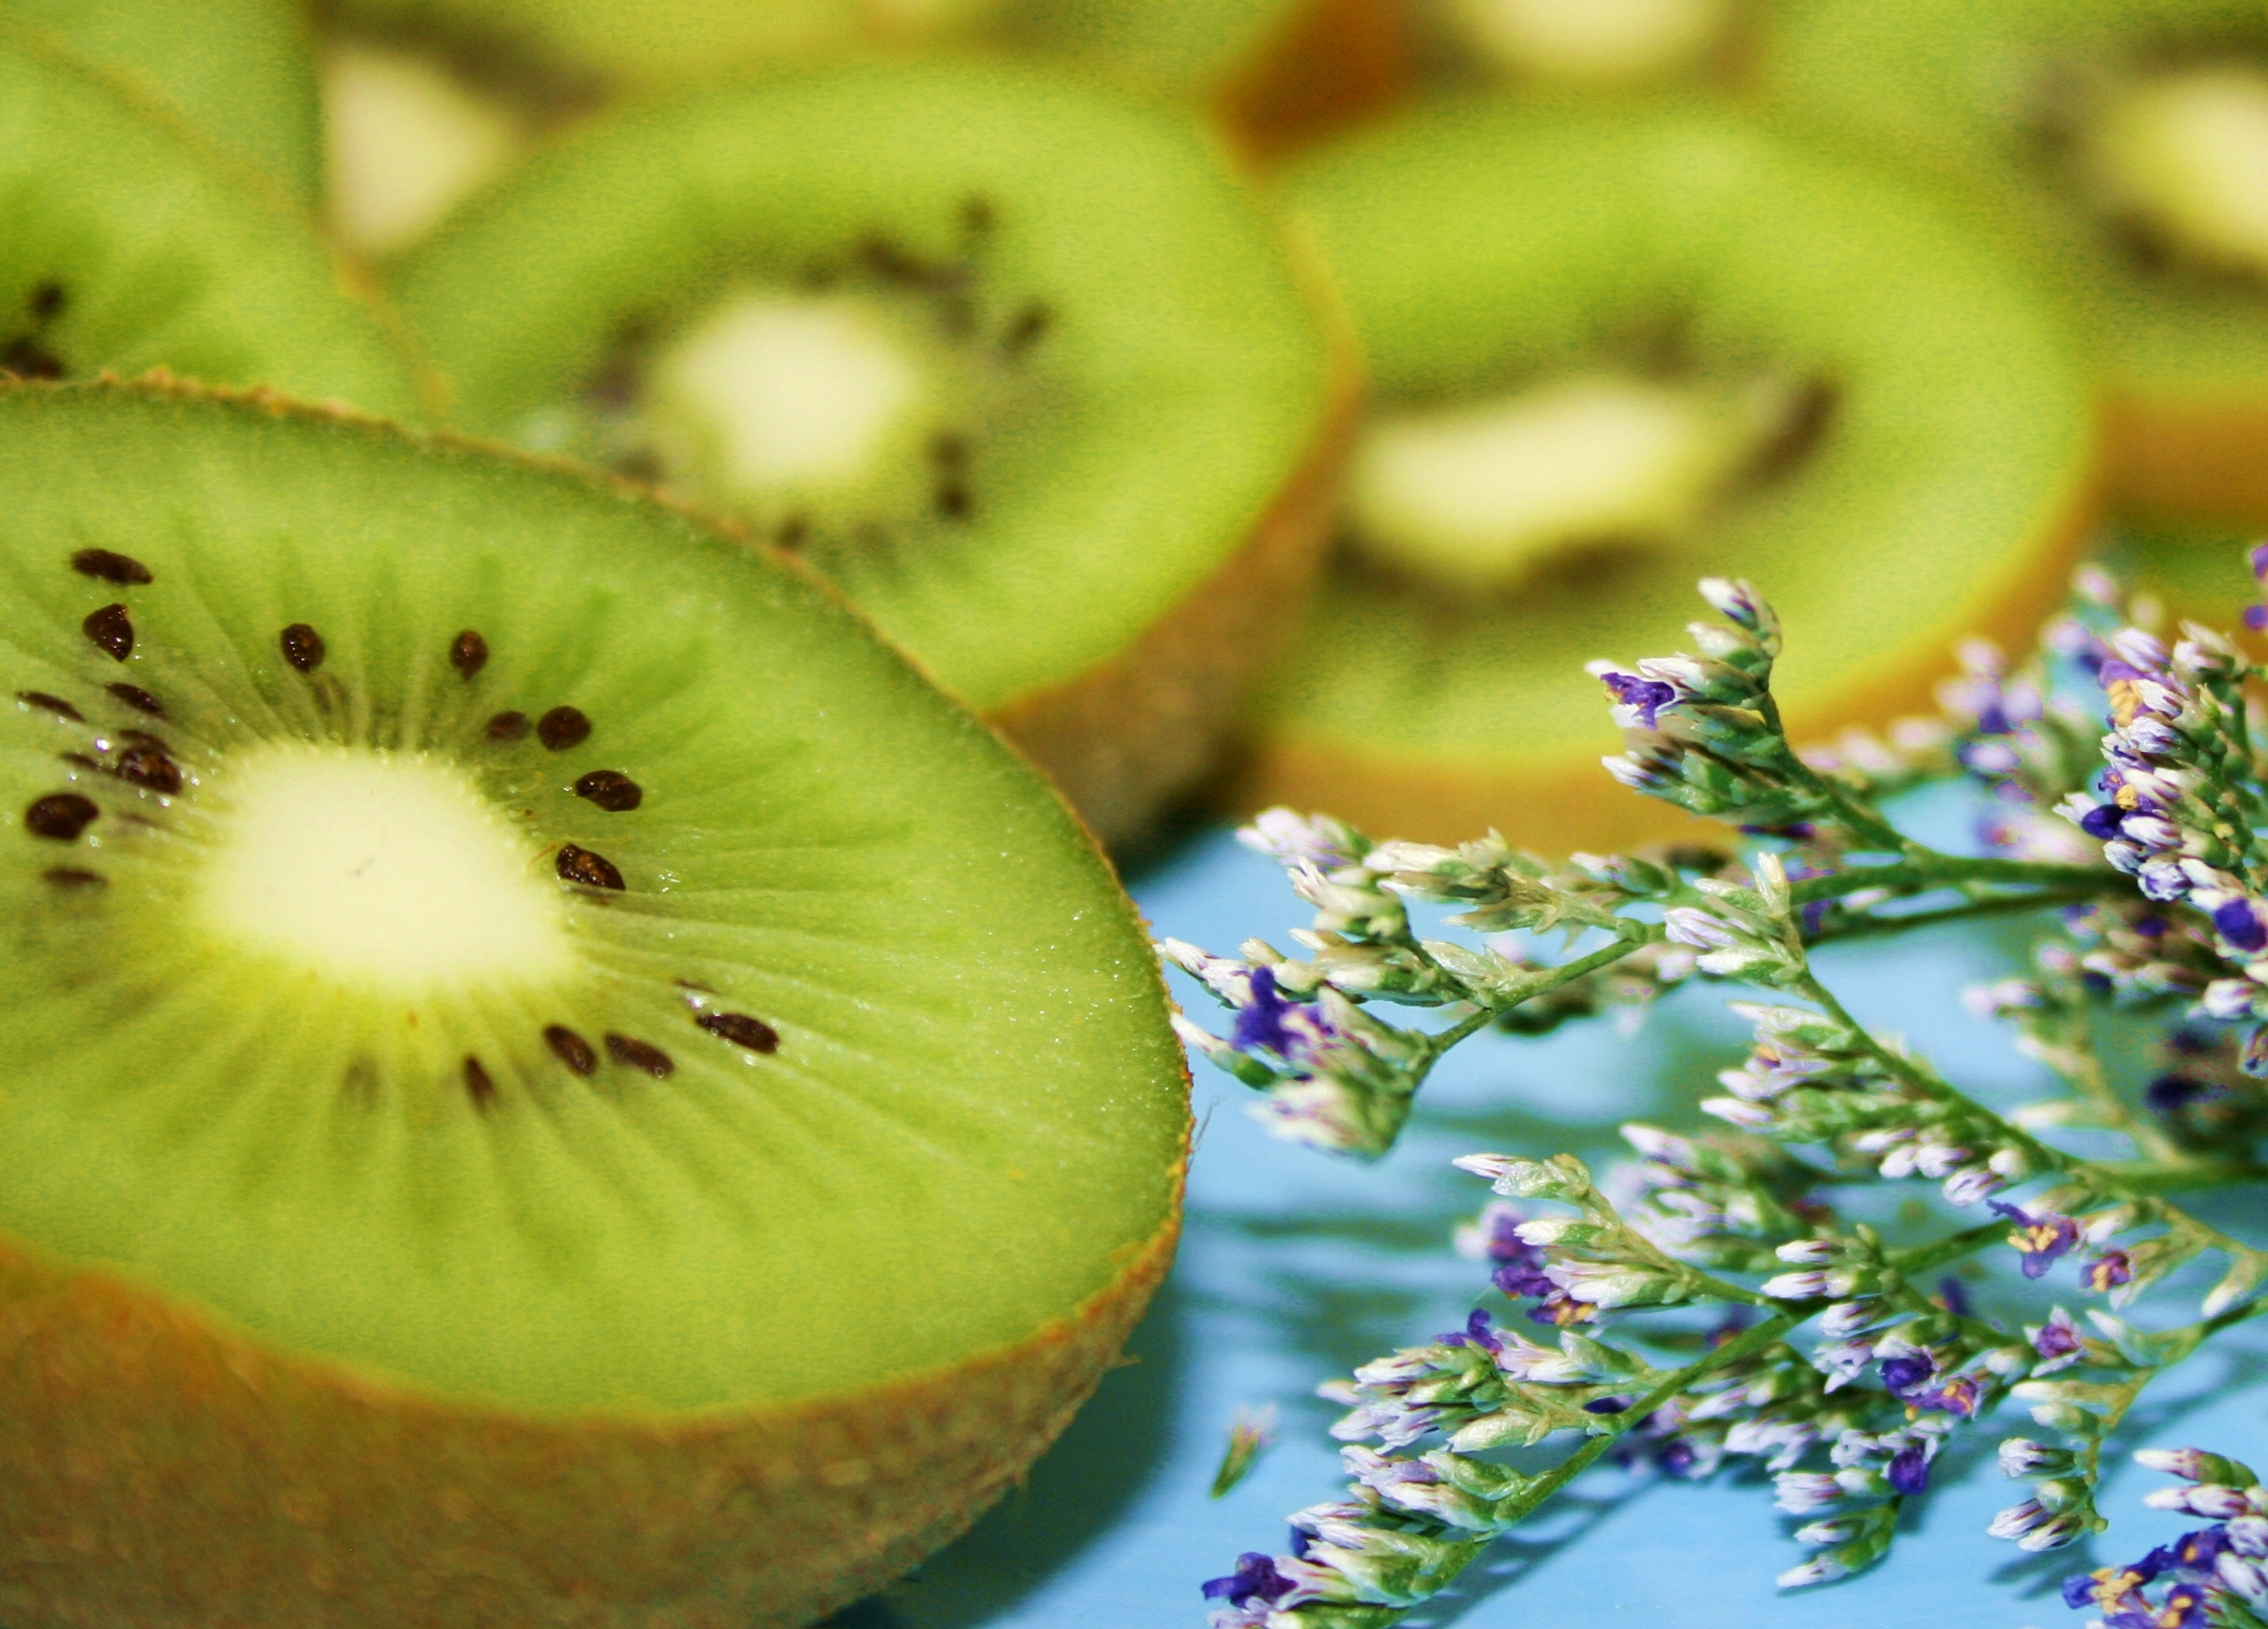 Filefree Pretty Green Kiwi Fruit On Aqua With Little Flowers